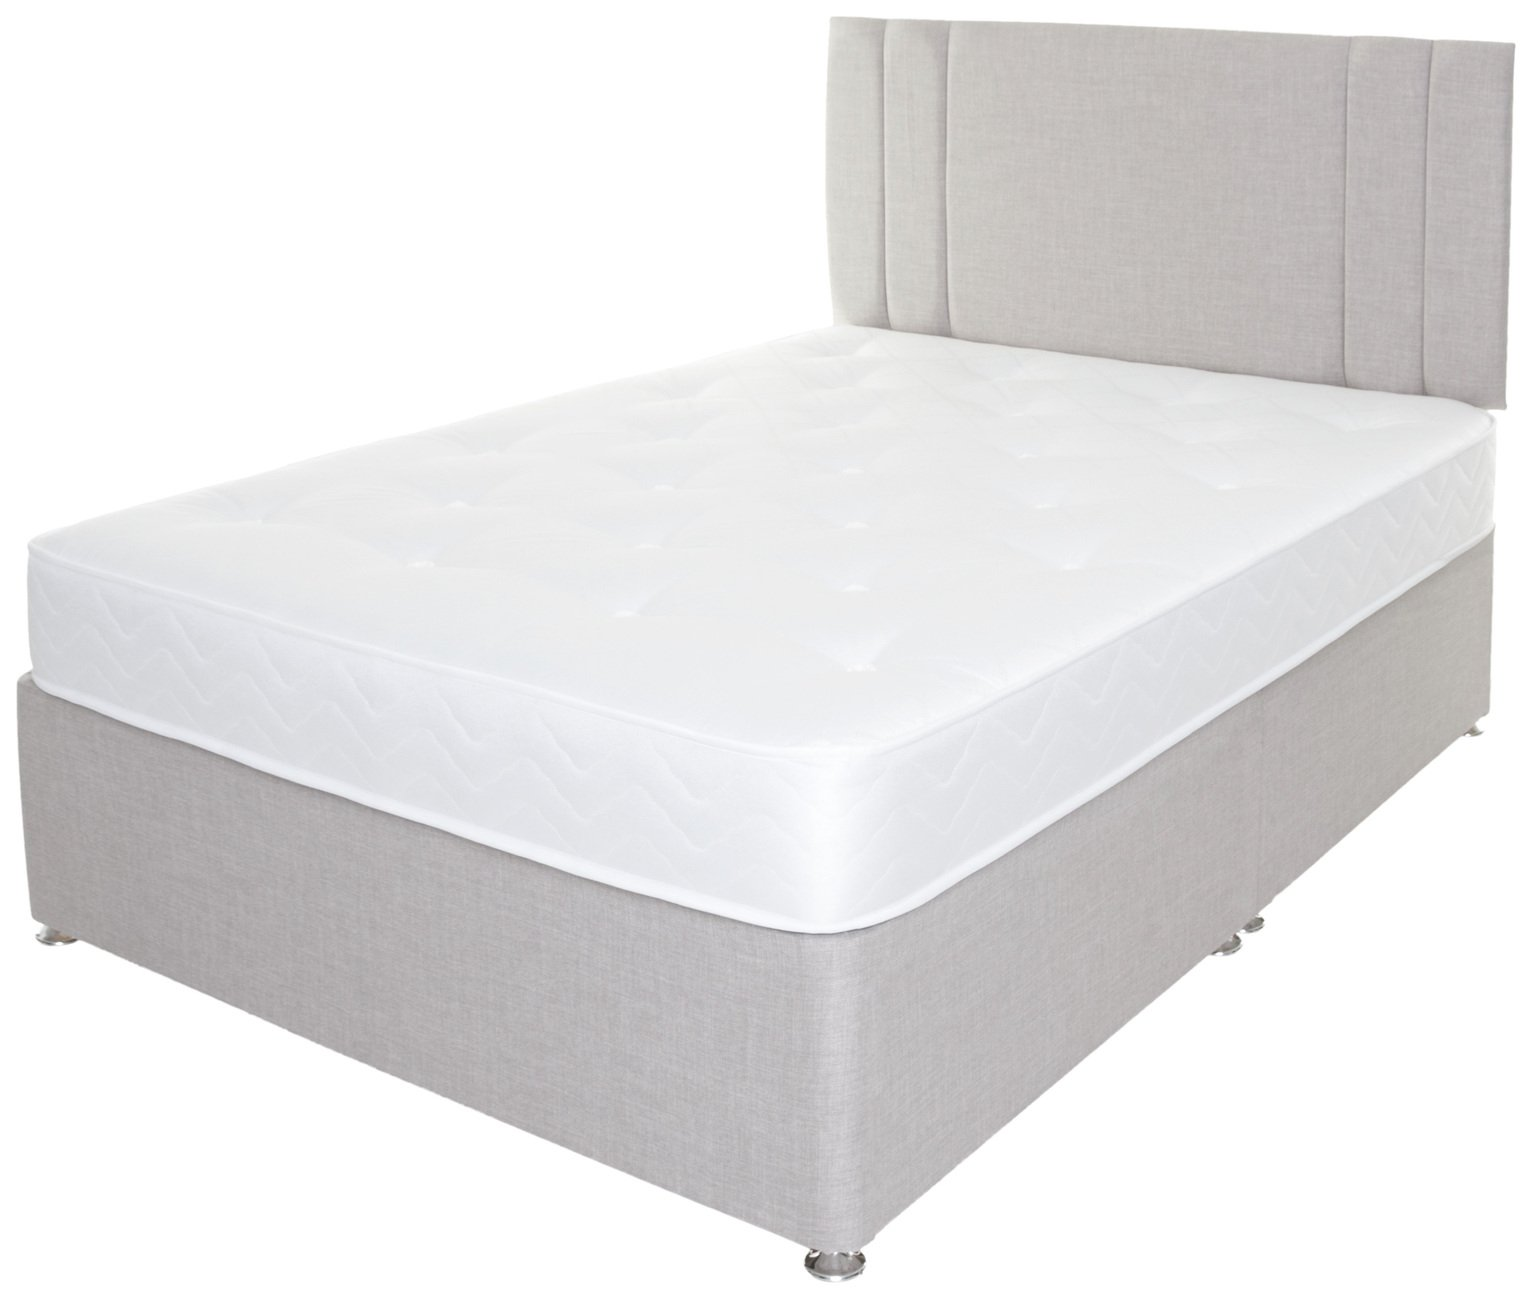 Airsprung Henlow 1200 Pocket Sprung Divan Set - Double